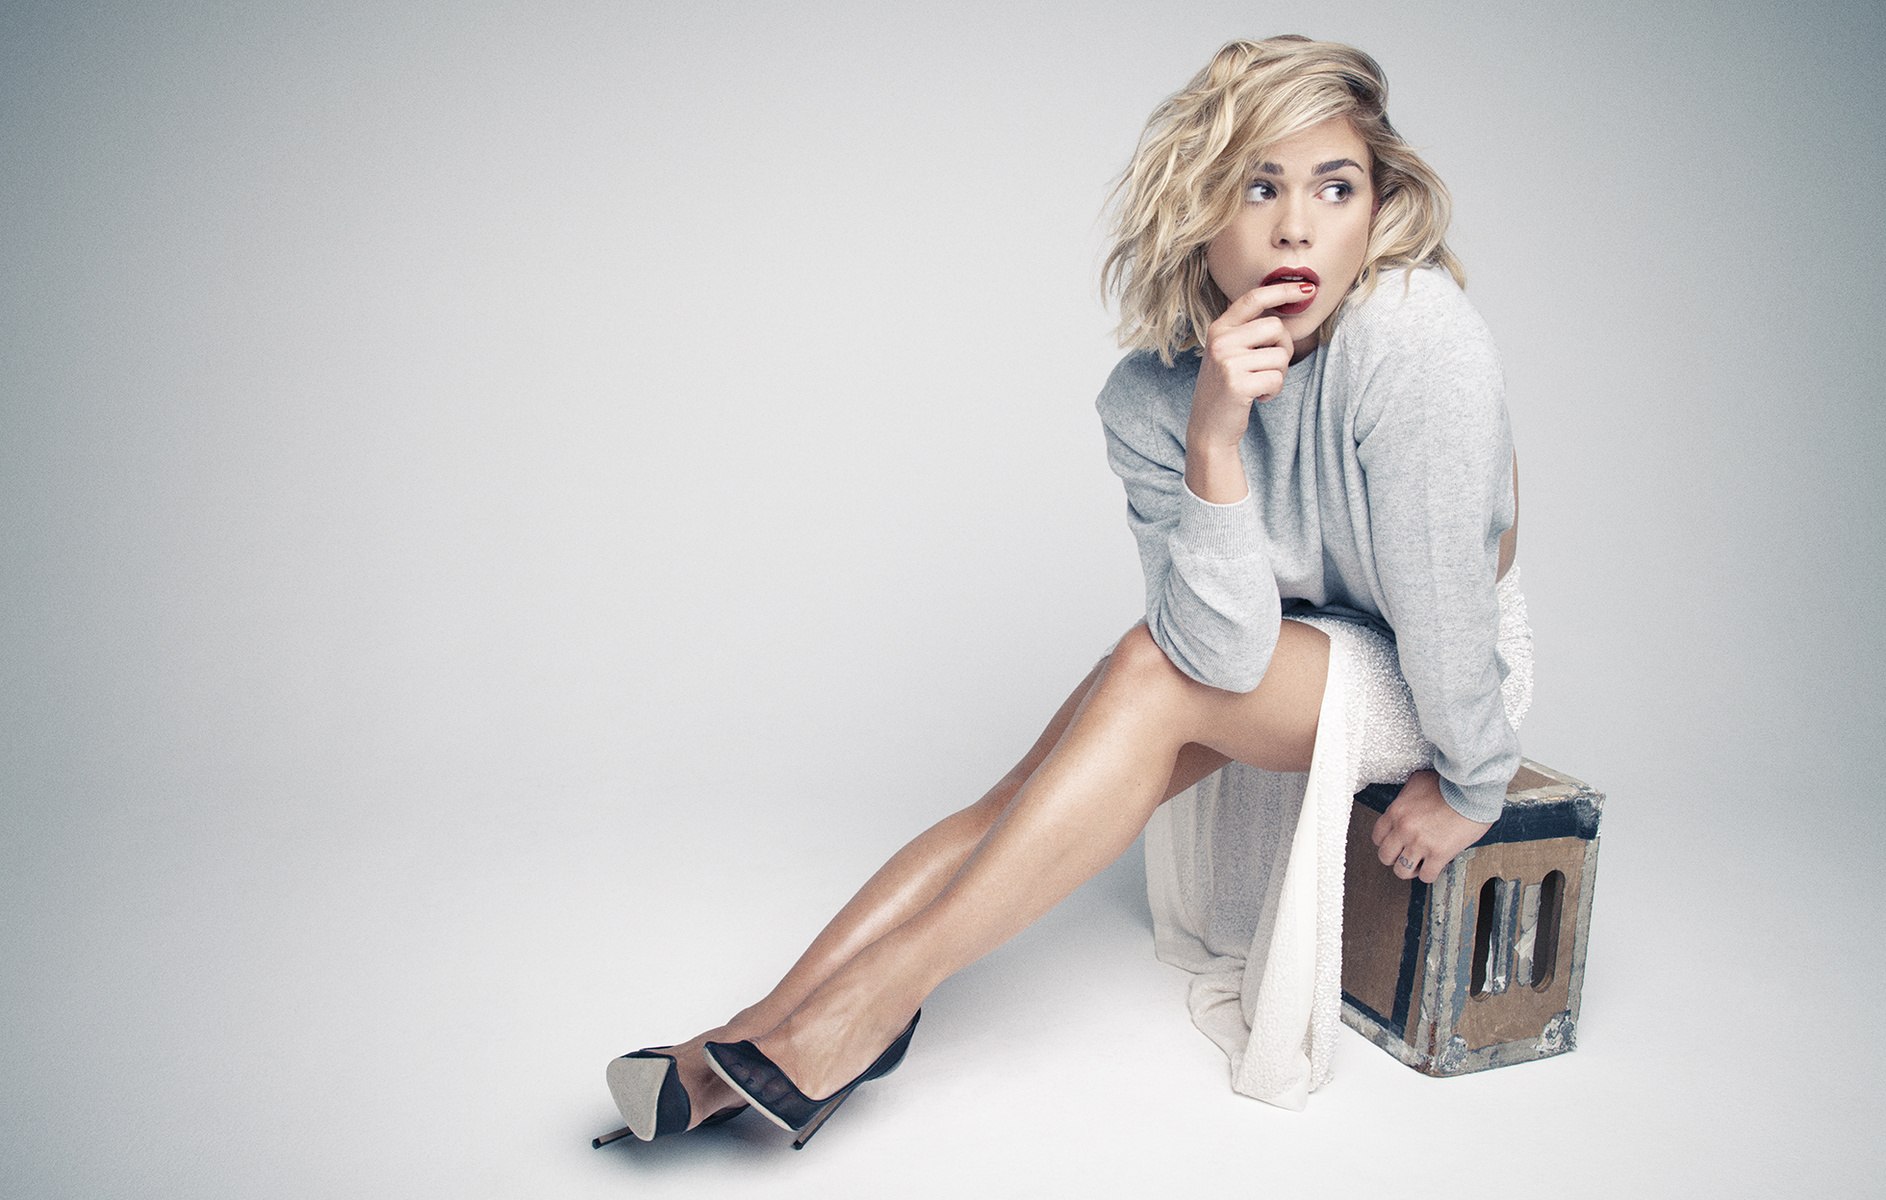 12 Hd Billie Piper Wallpapers-7868